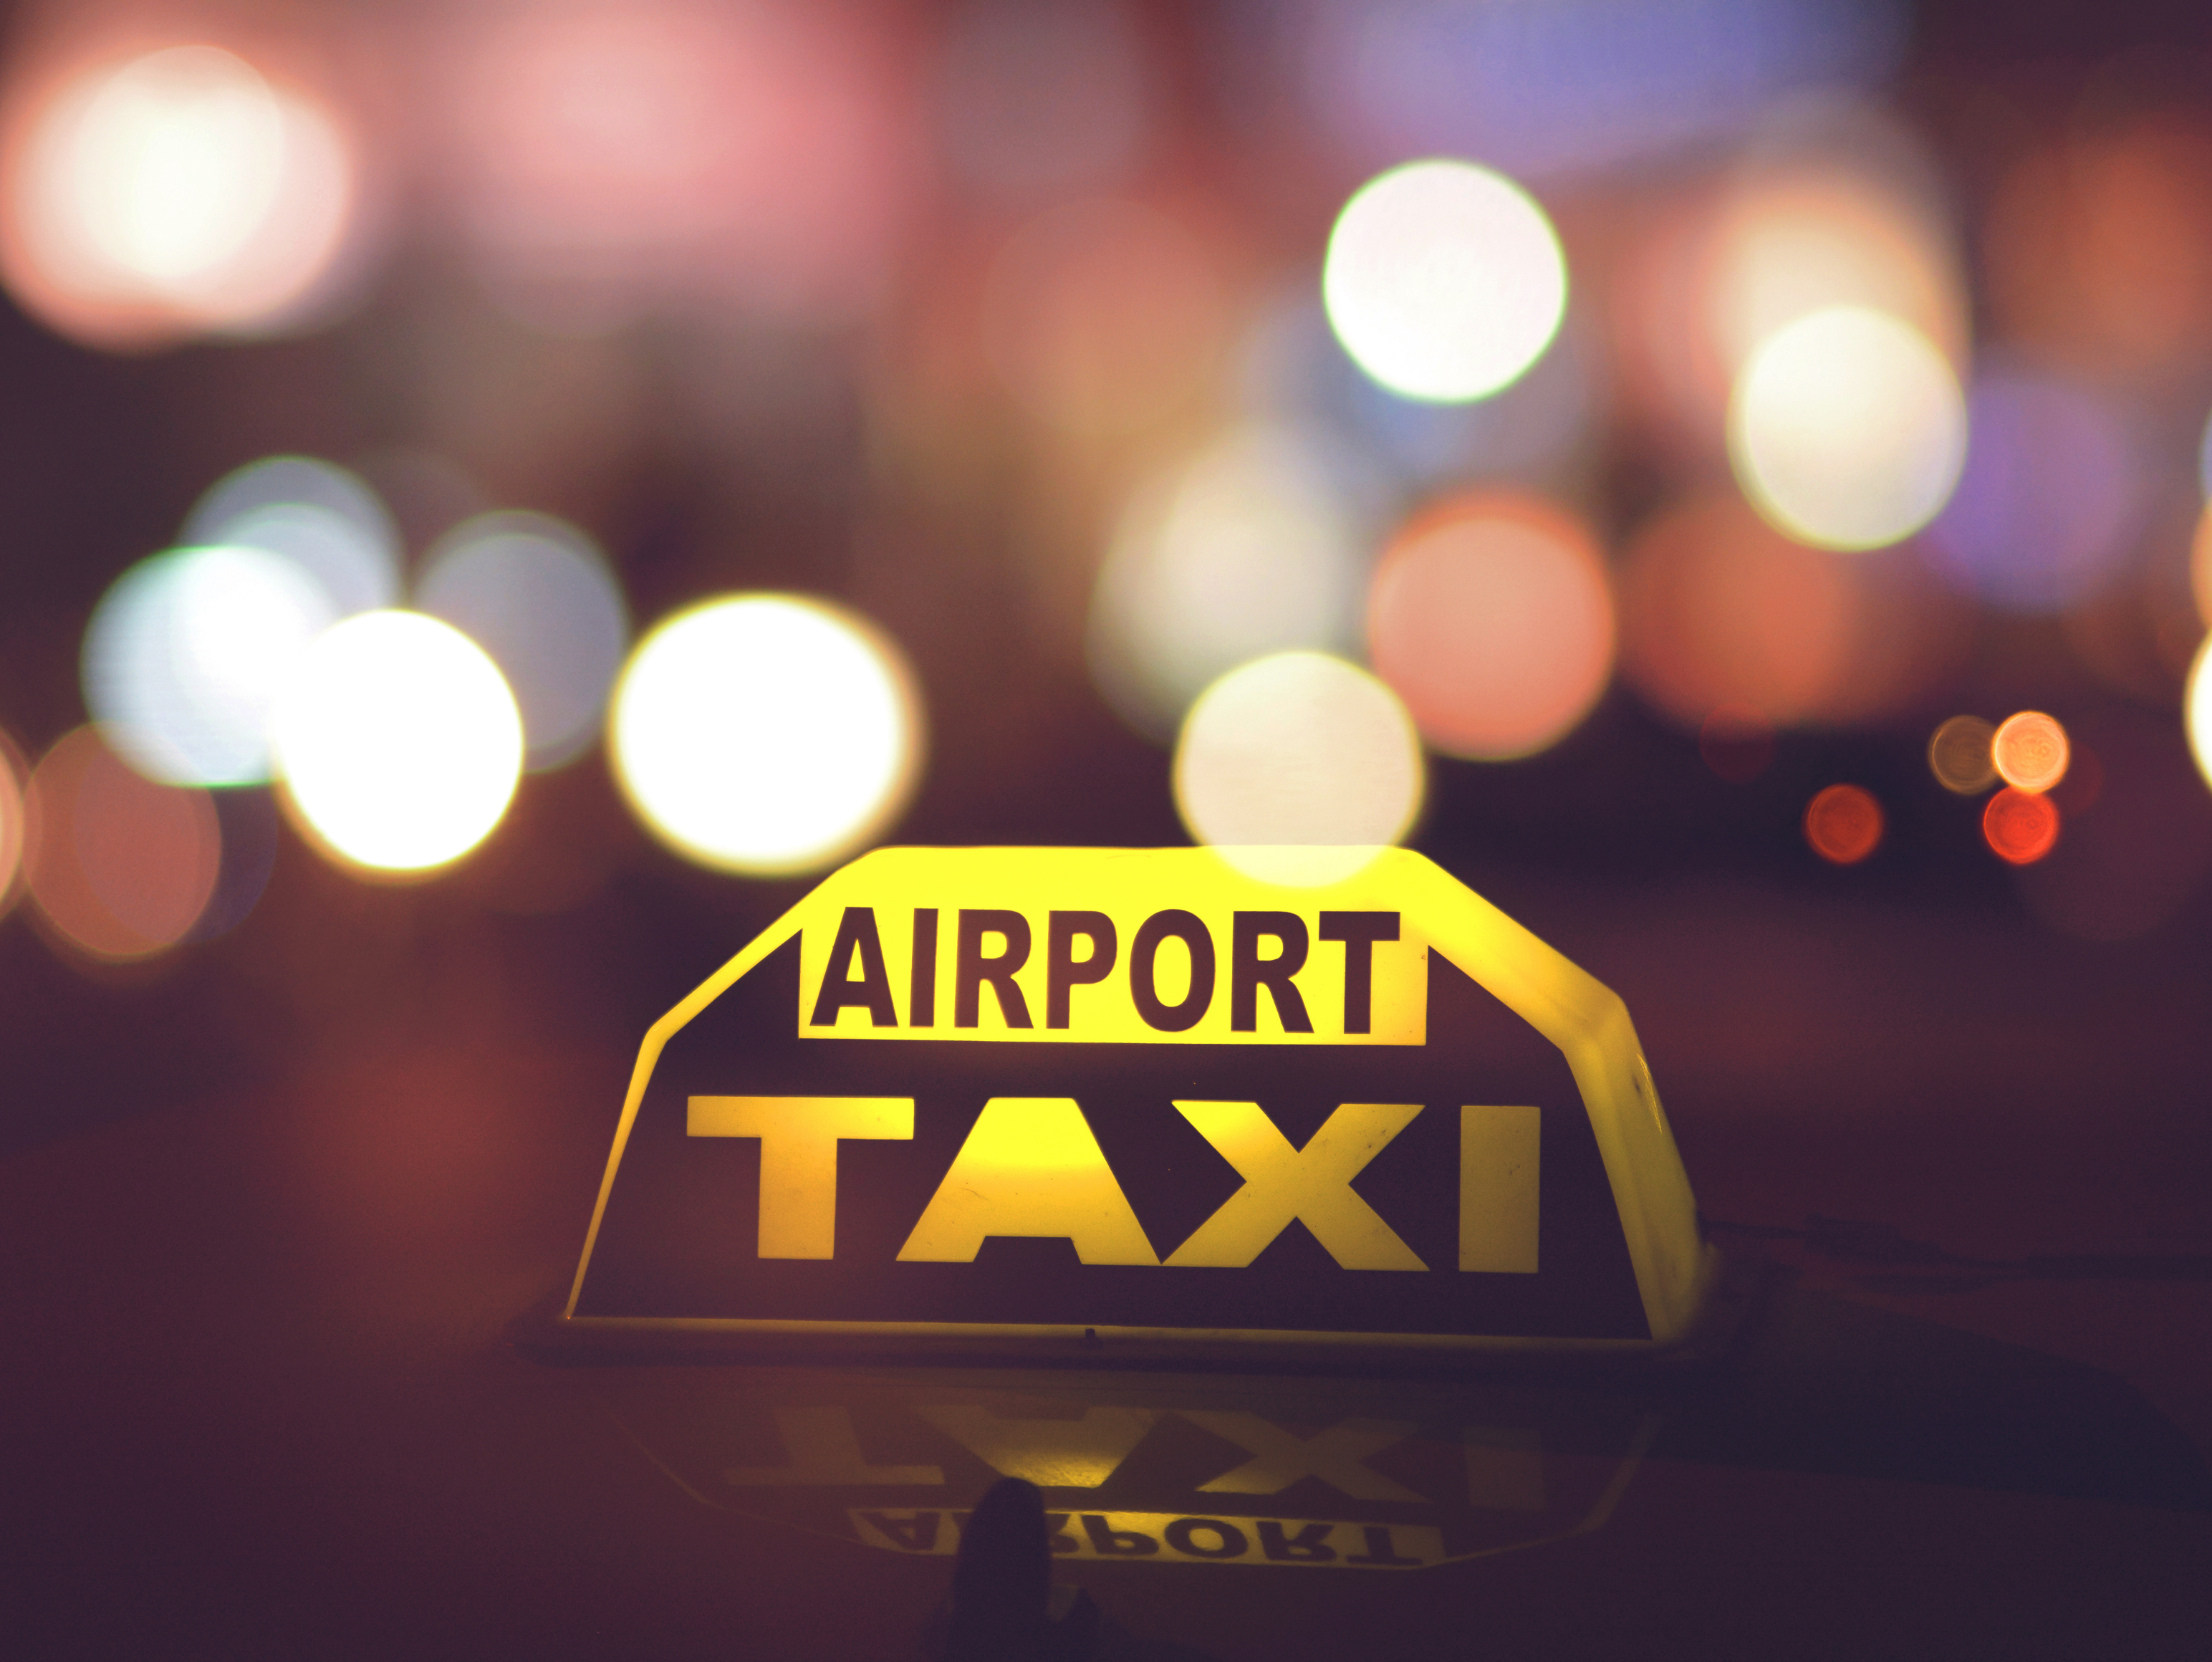 Ready For Hot Girl Summer?: 5 Ideal Reasons To Book An Online Airport Taxi Service - Travepreneur